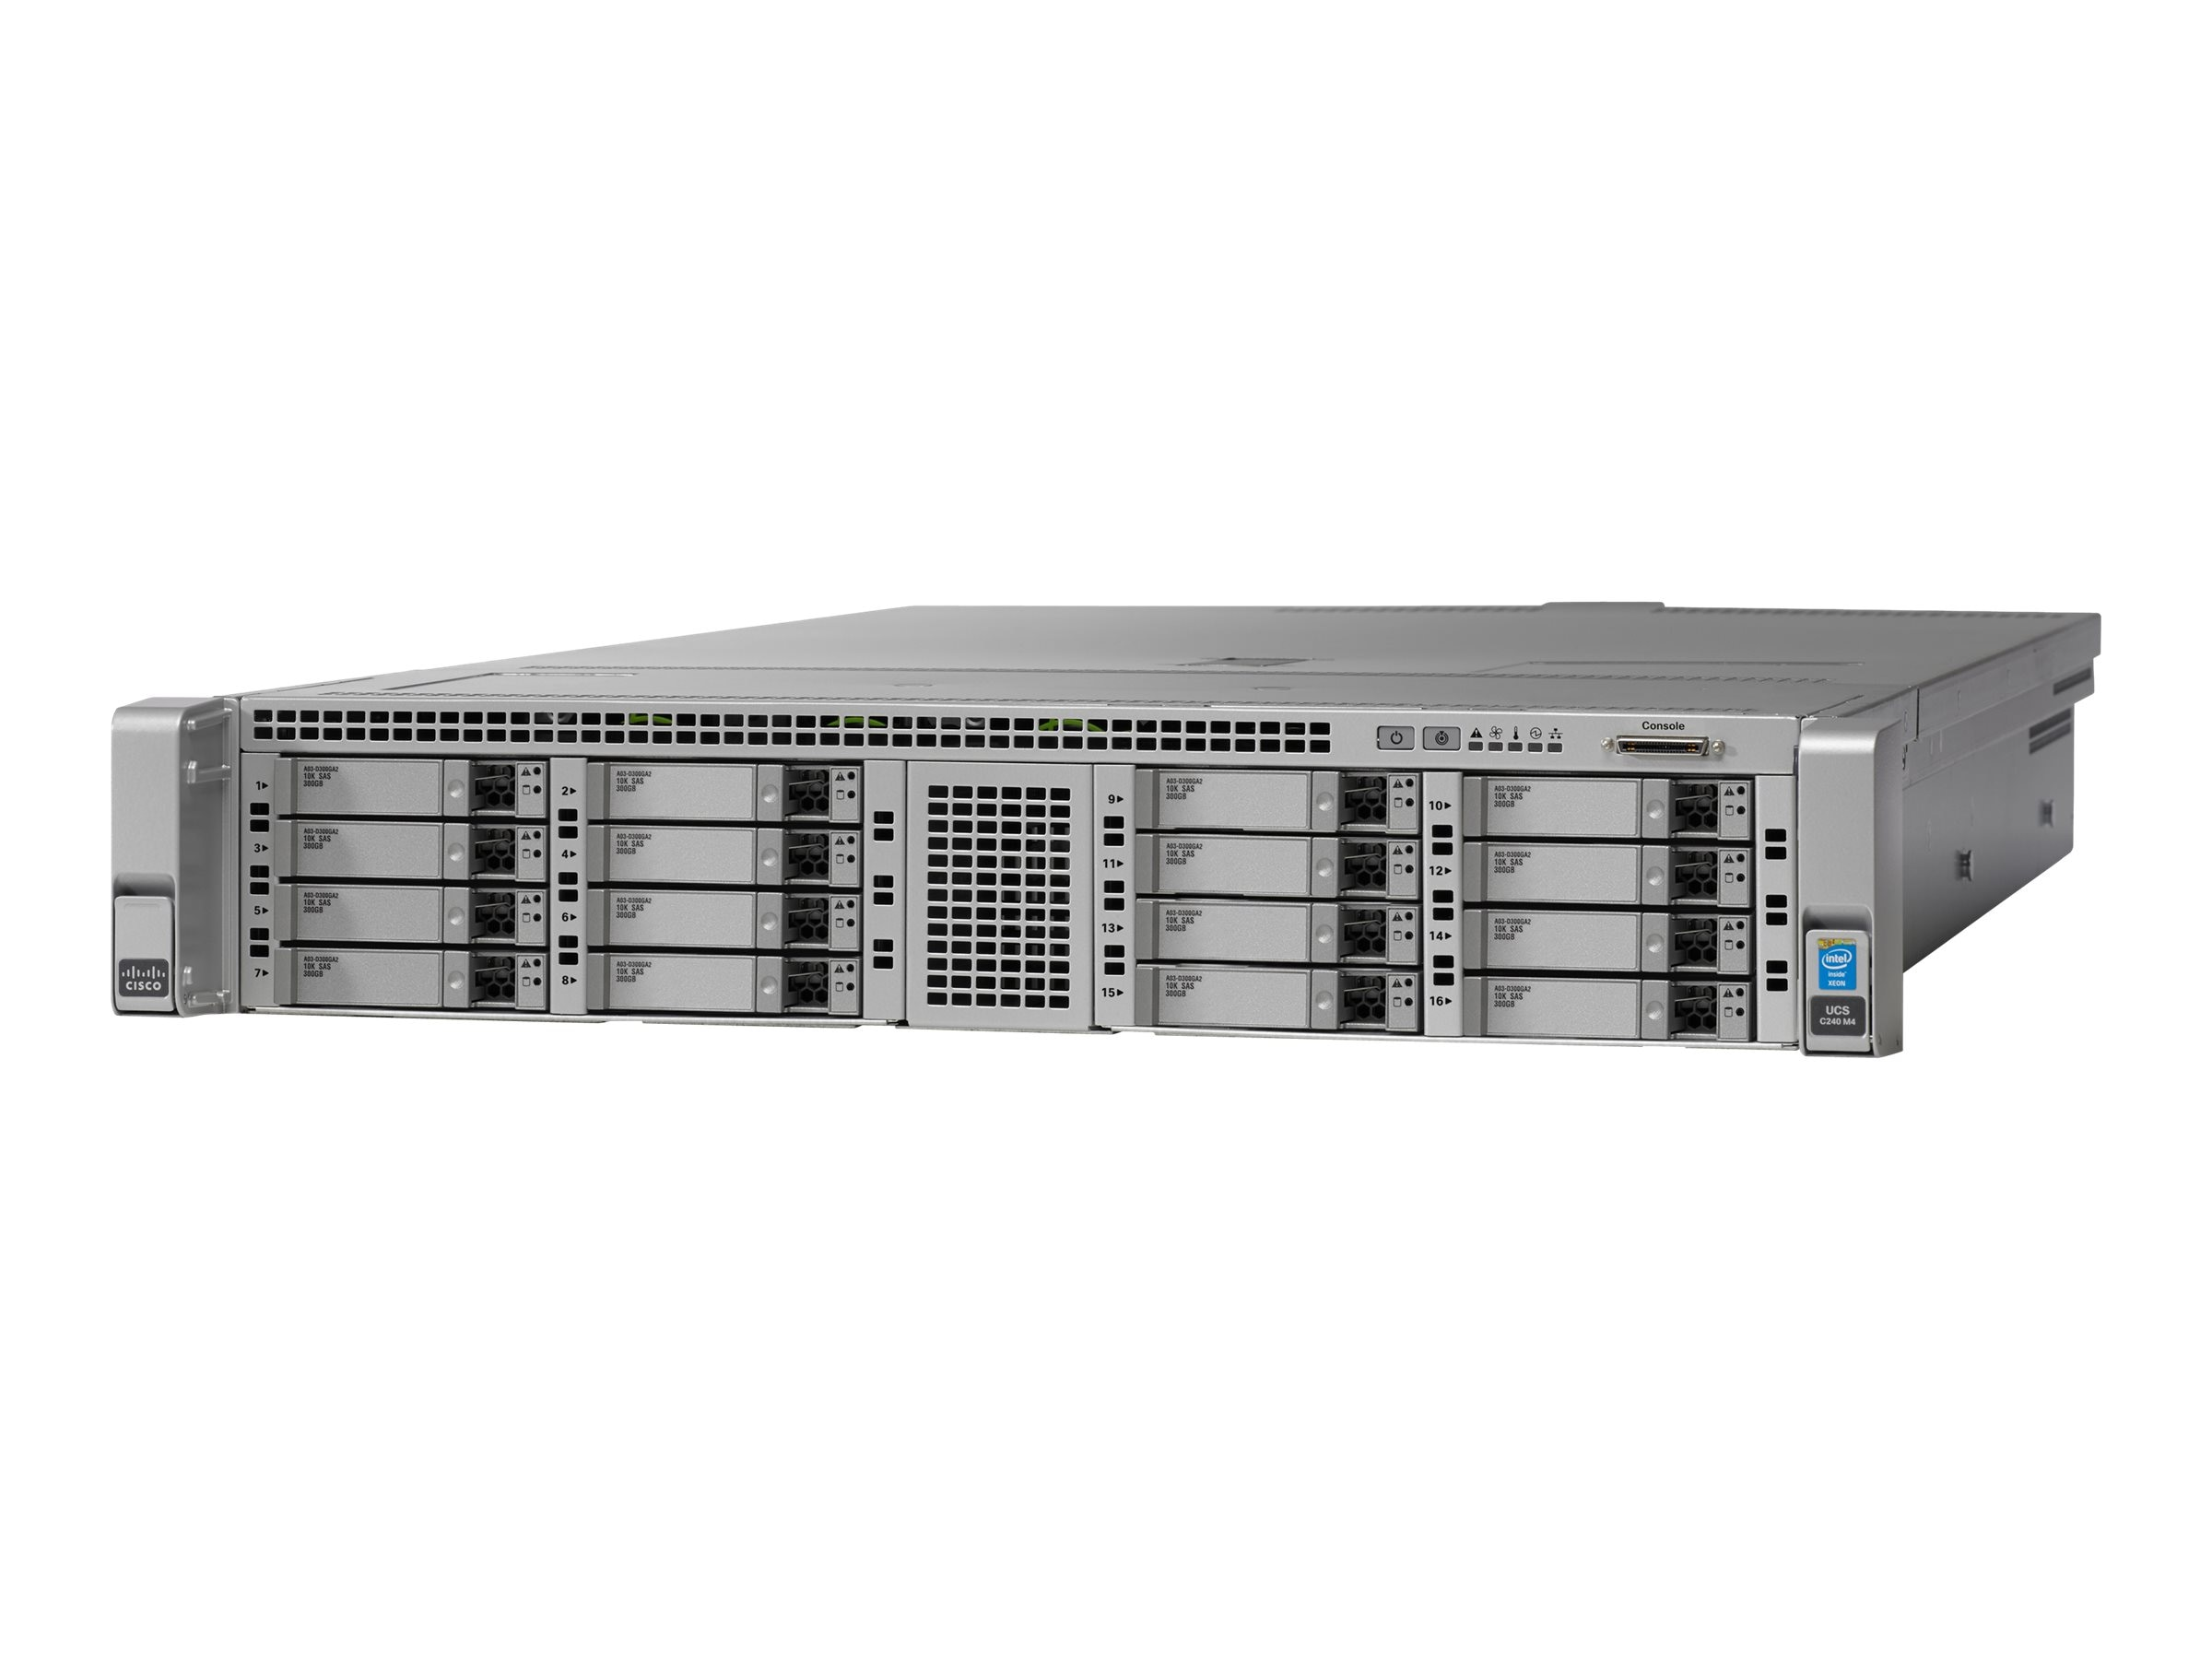 Cisco Barebones, UCS C220 M4 SFF without CPU, Memory, or HDD, UCSC-C240-M4S-CH, 18235932, Barebones Systems